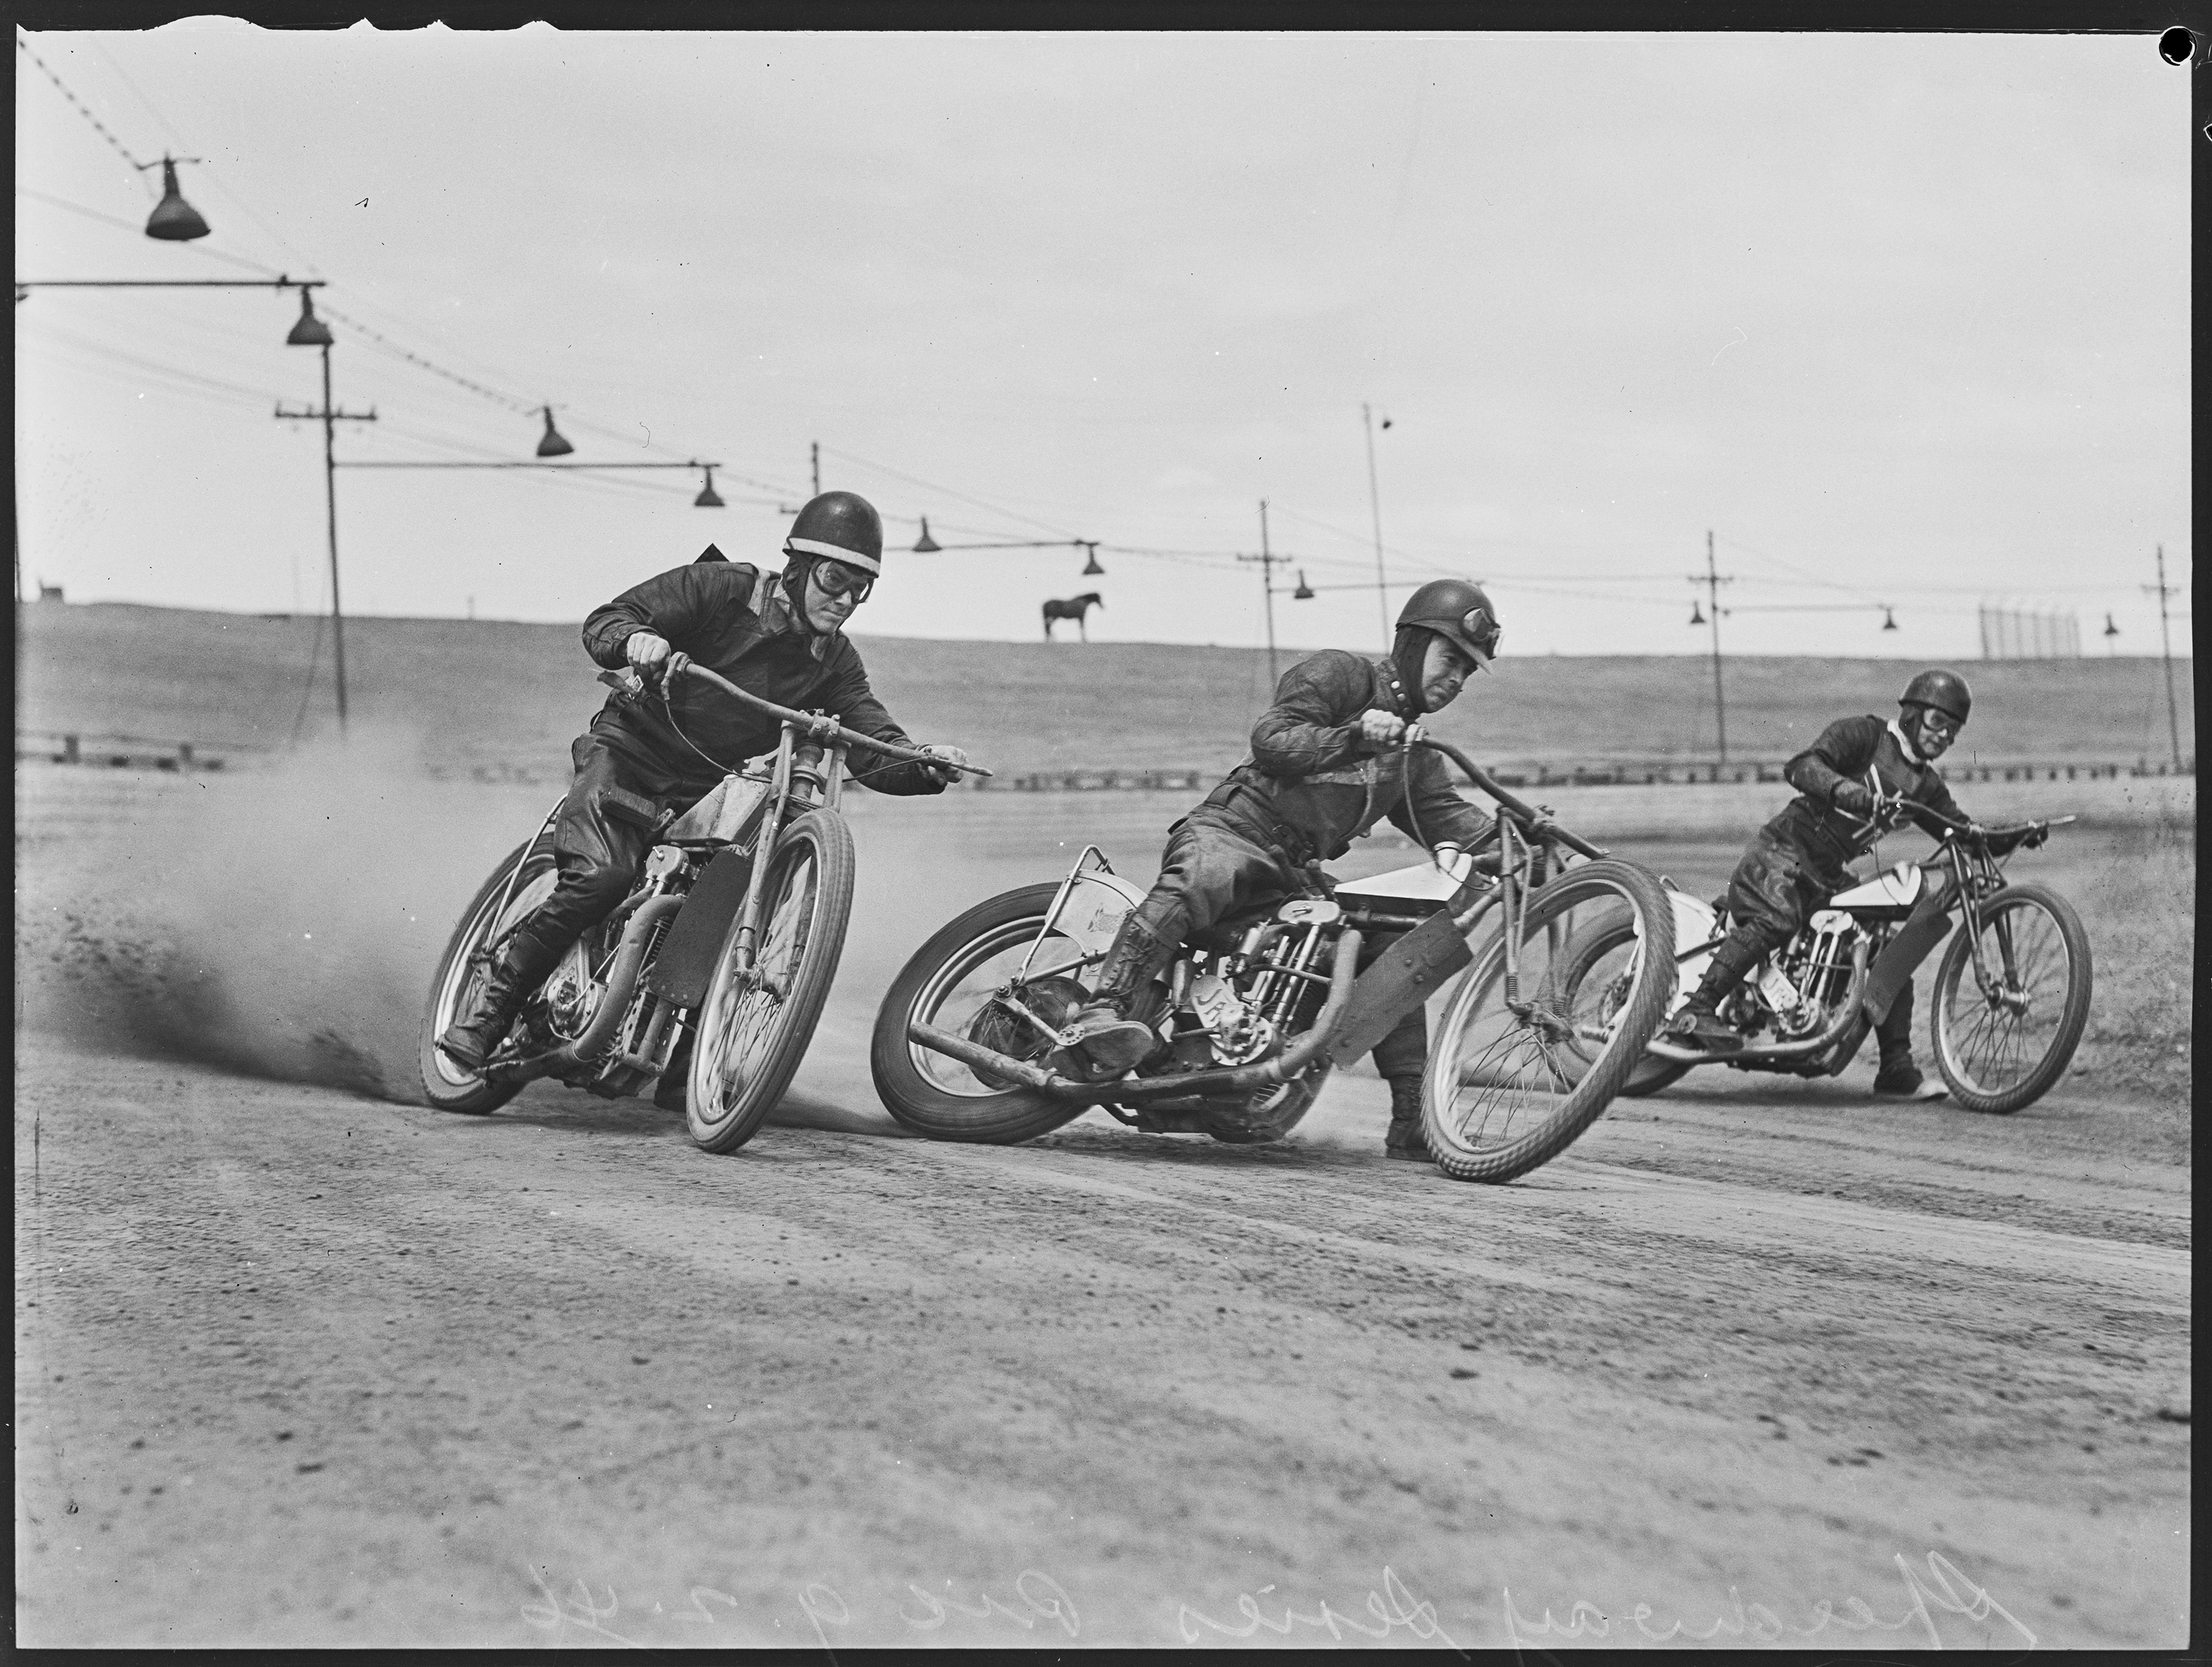 Sydney Speedway, 9 February 1946, photographed by Ray Olson